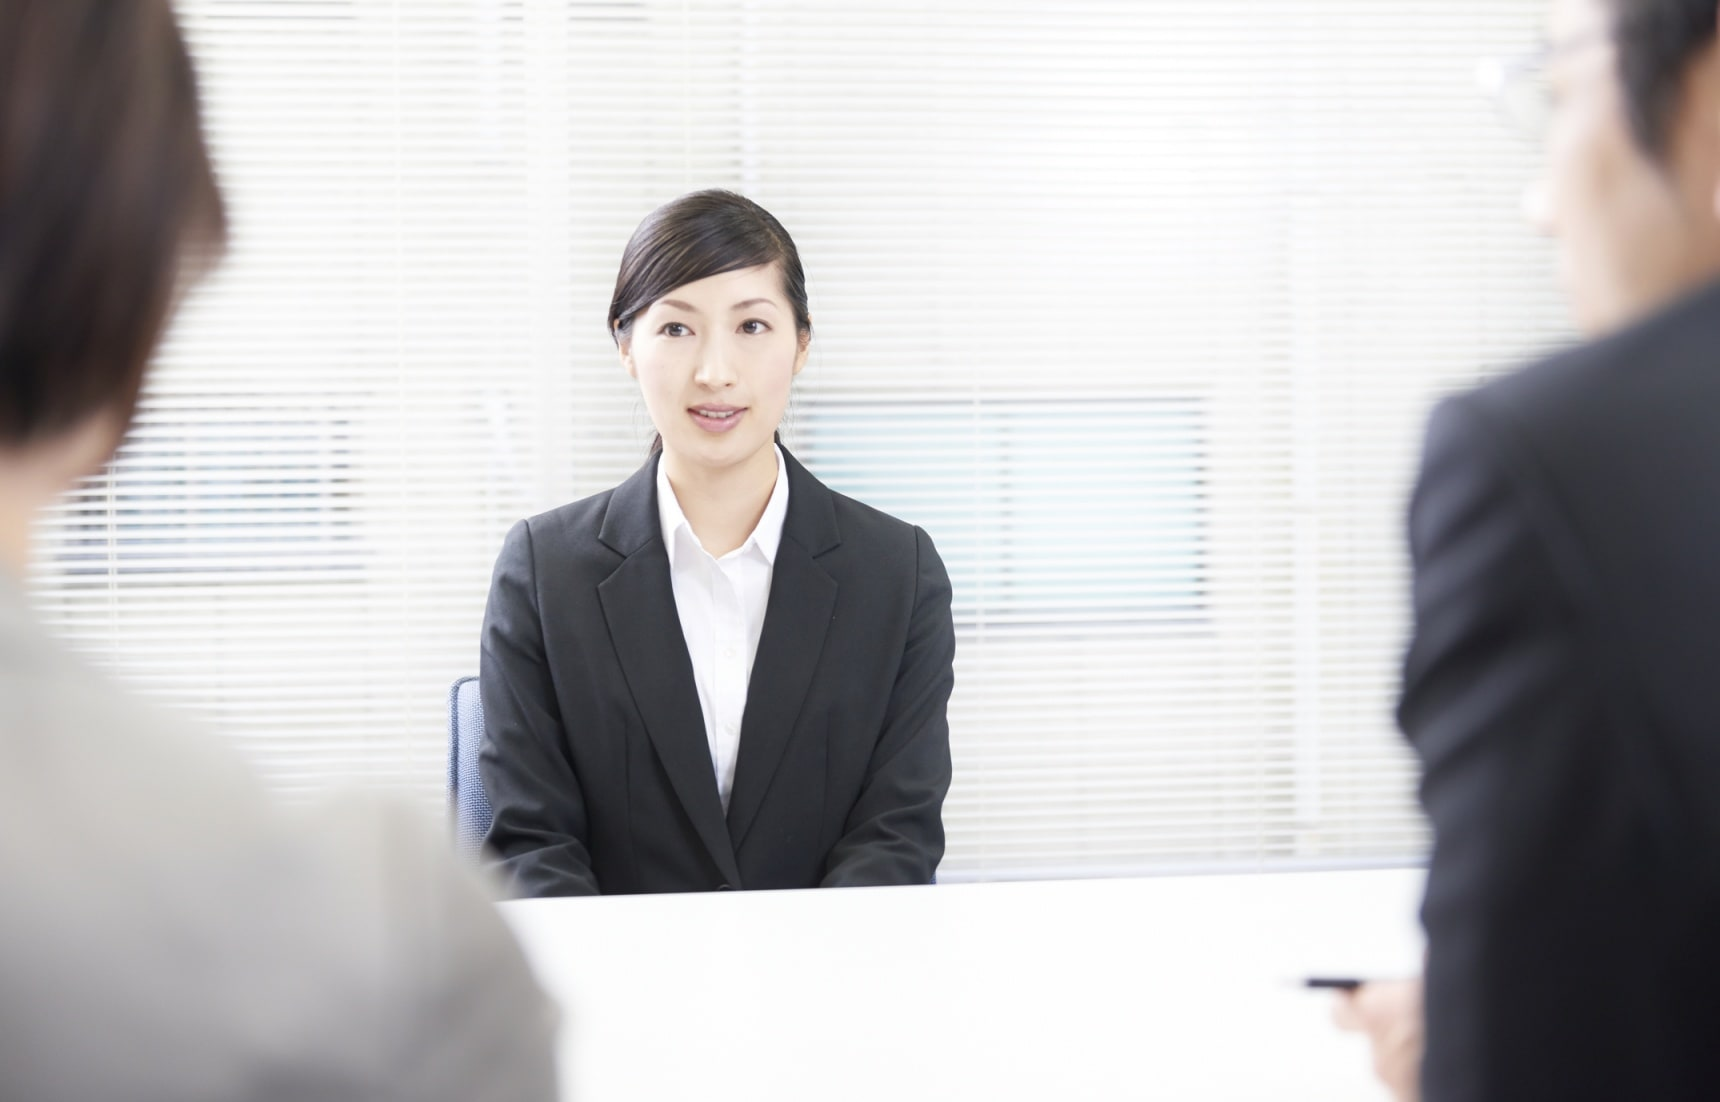 5 Things to Expect During a Teaching Interview